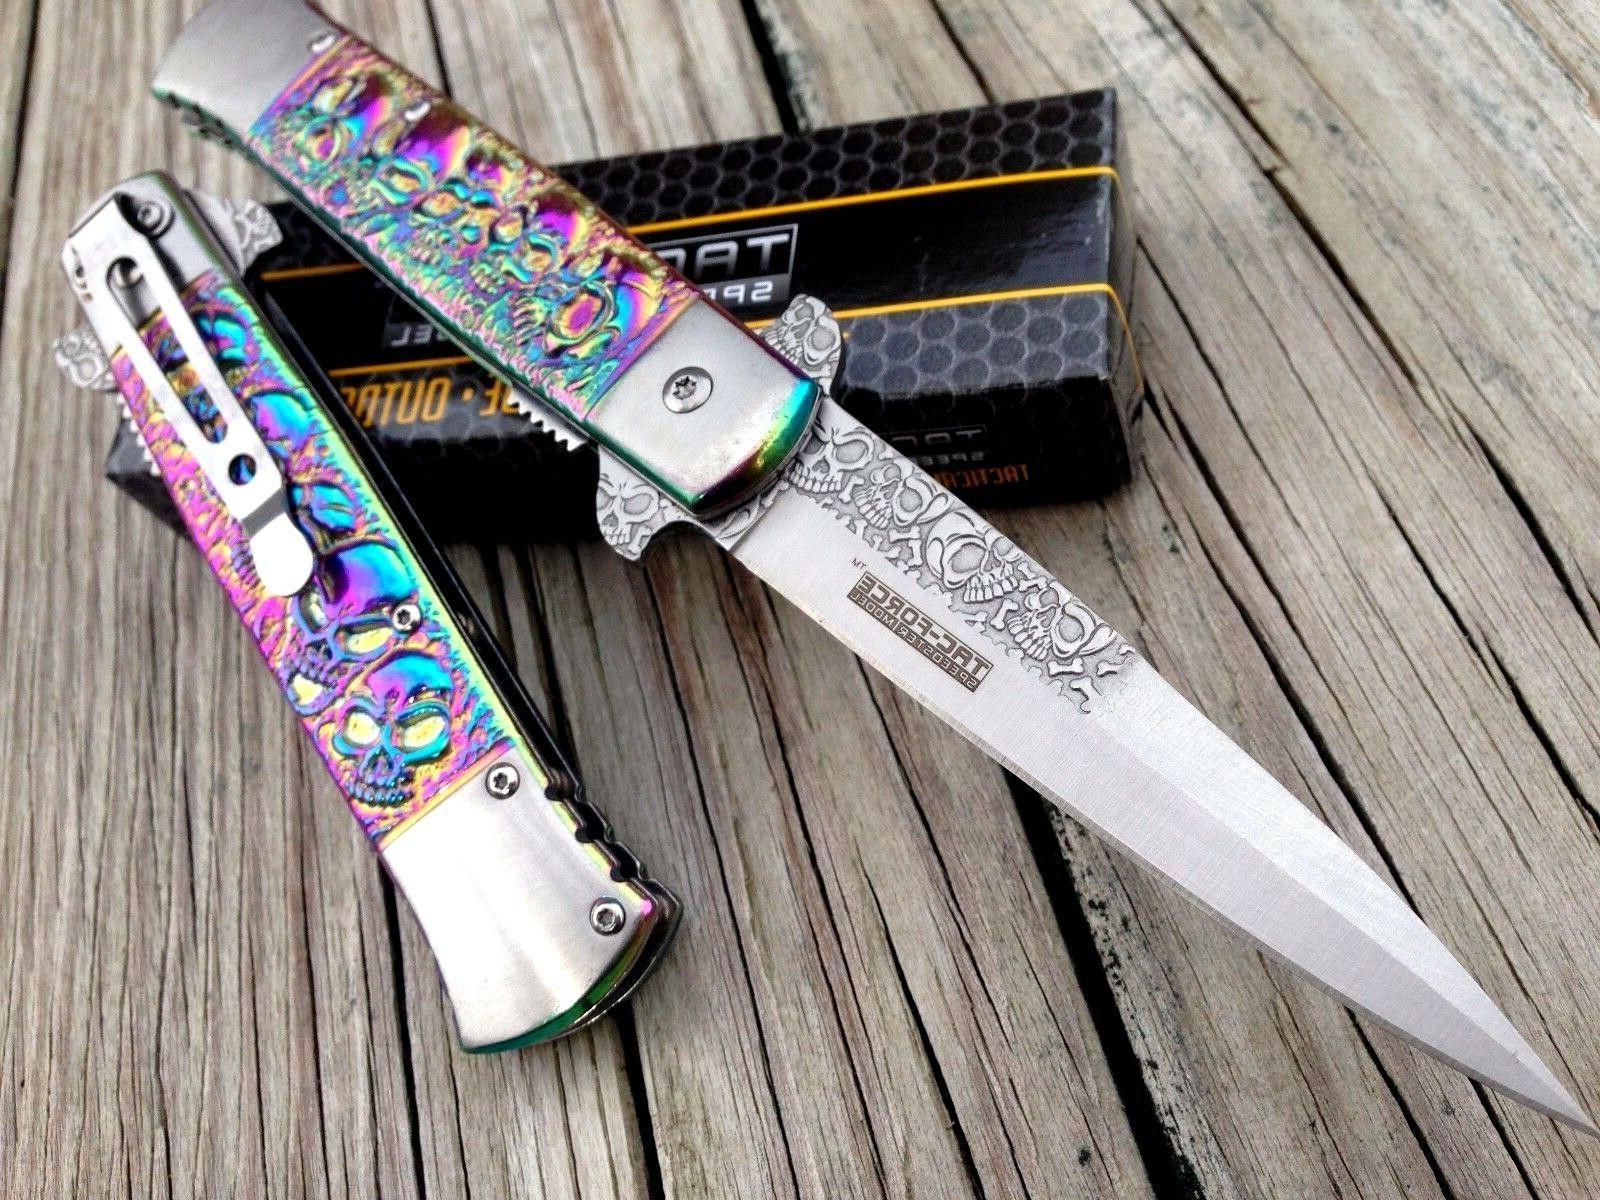 TAC FORCE ASSISTED OPEN TACTICAL RAINBOW MILANO SKULL FOLDIN